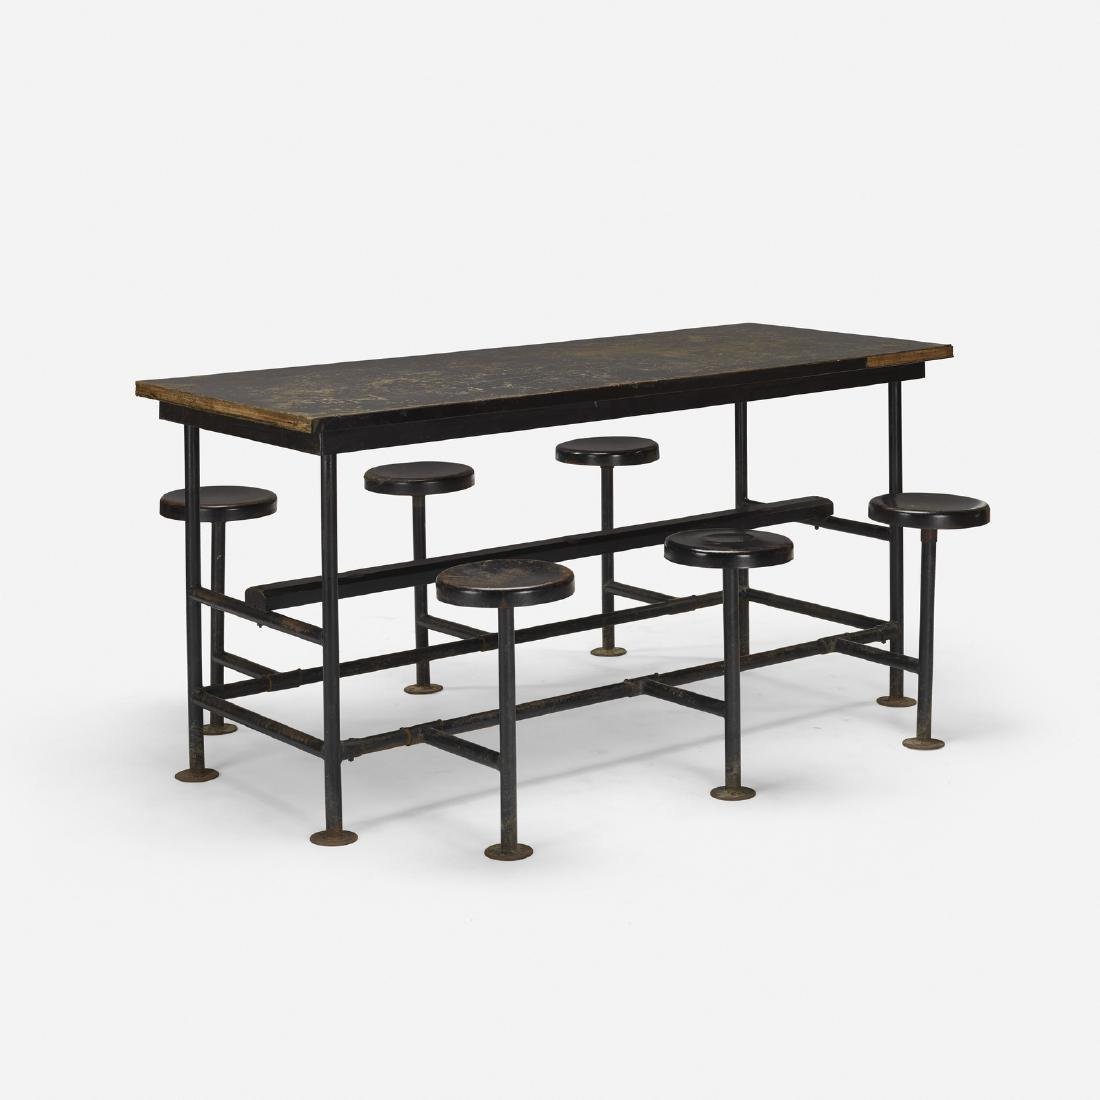 American, cafeteria table